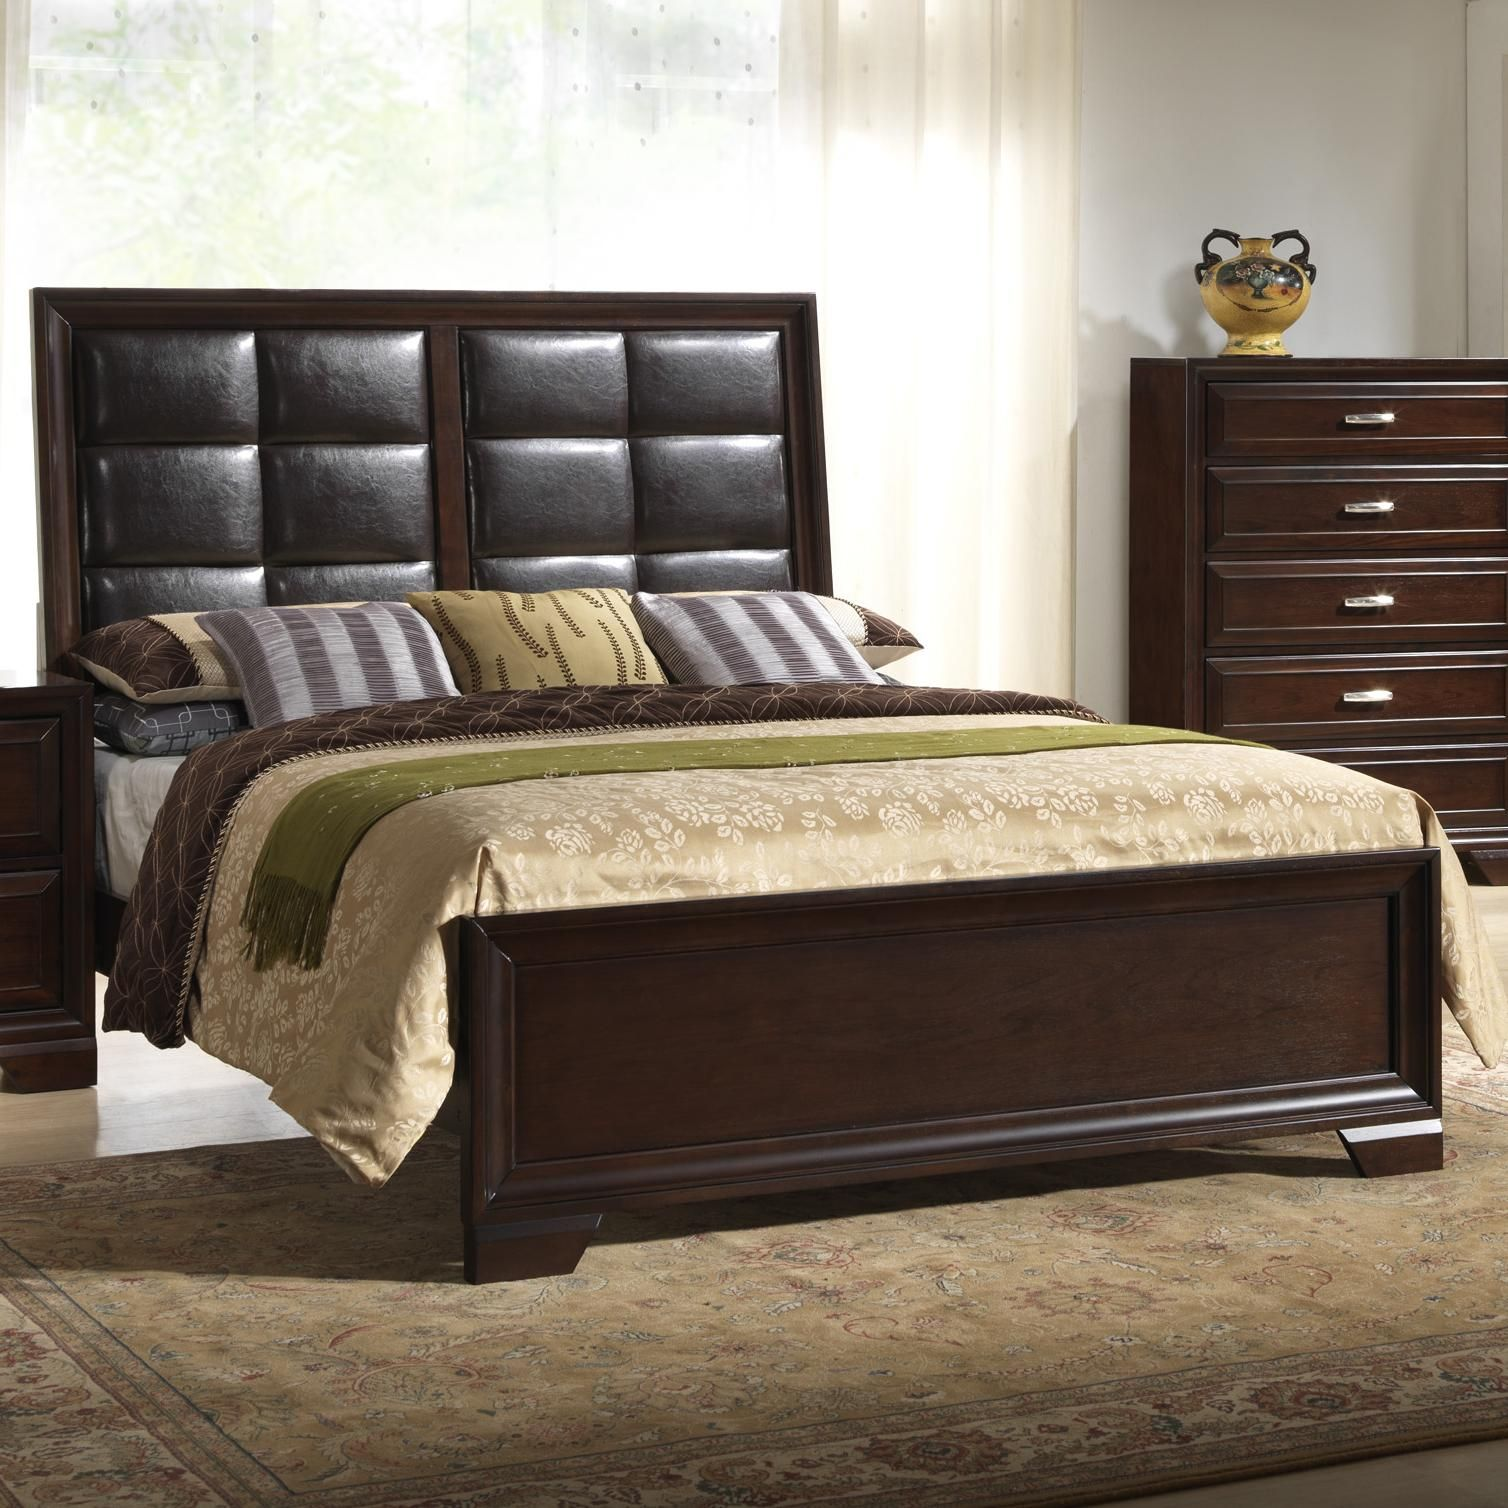 B6510 Queen Upholstered Bed by Crown Mark Queen